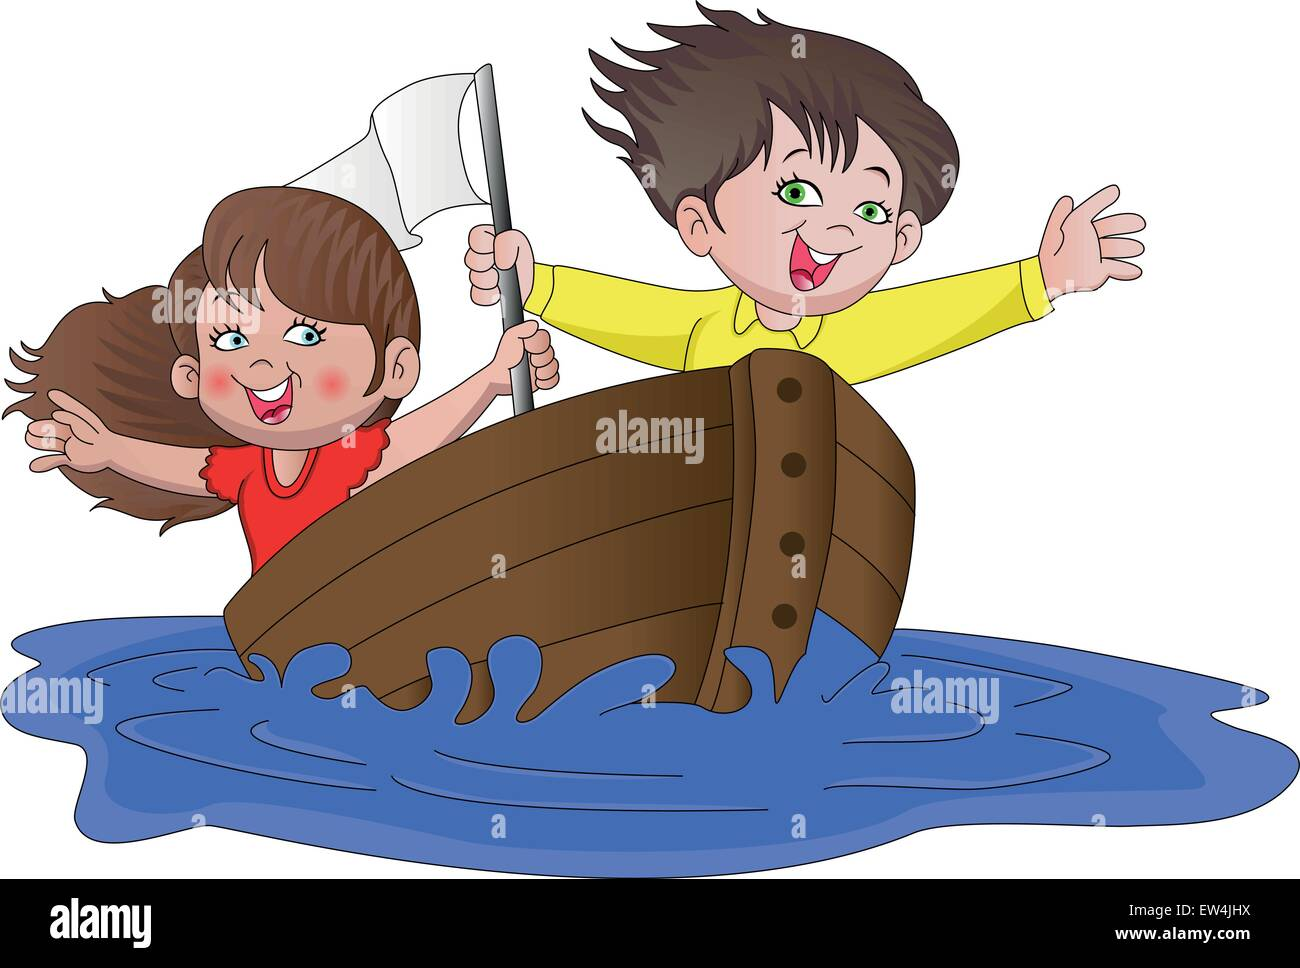 Vector illustration of happy boy and girl traveling on boat. - Stock Vector